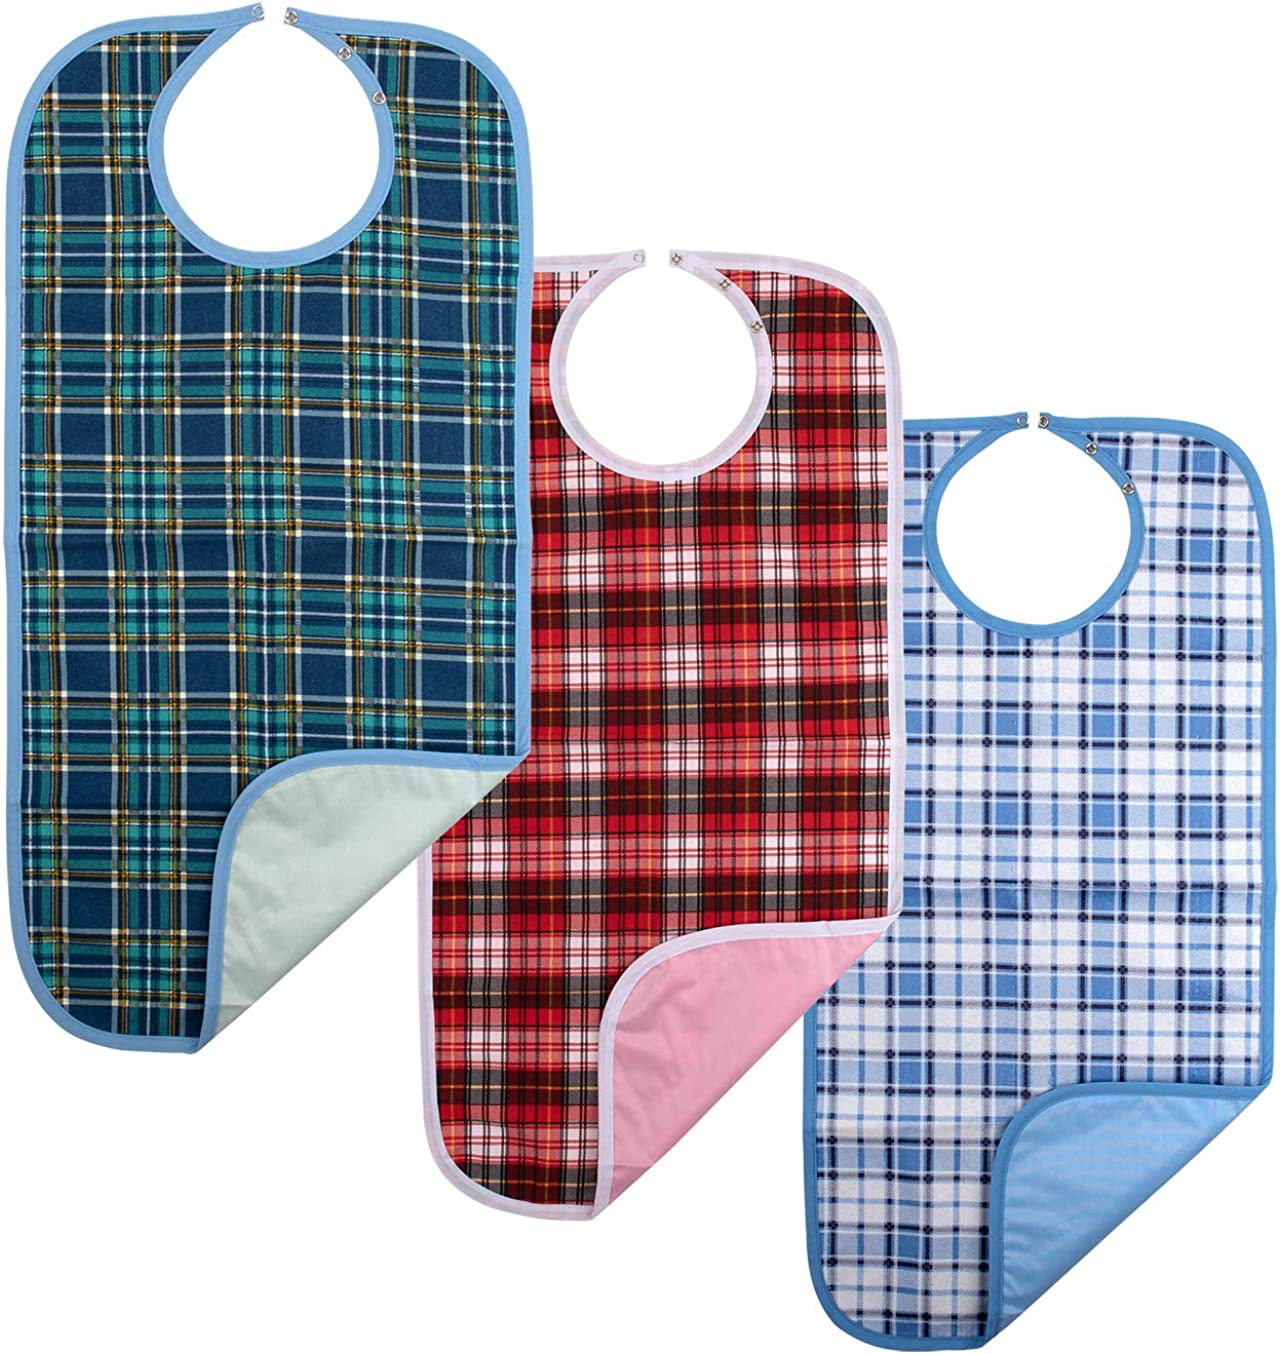 Adult Bib Clothing Protector,(3 Pack,18